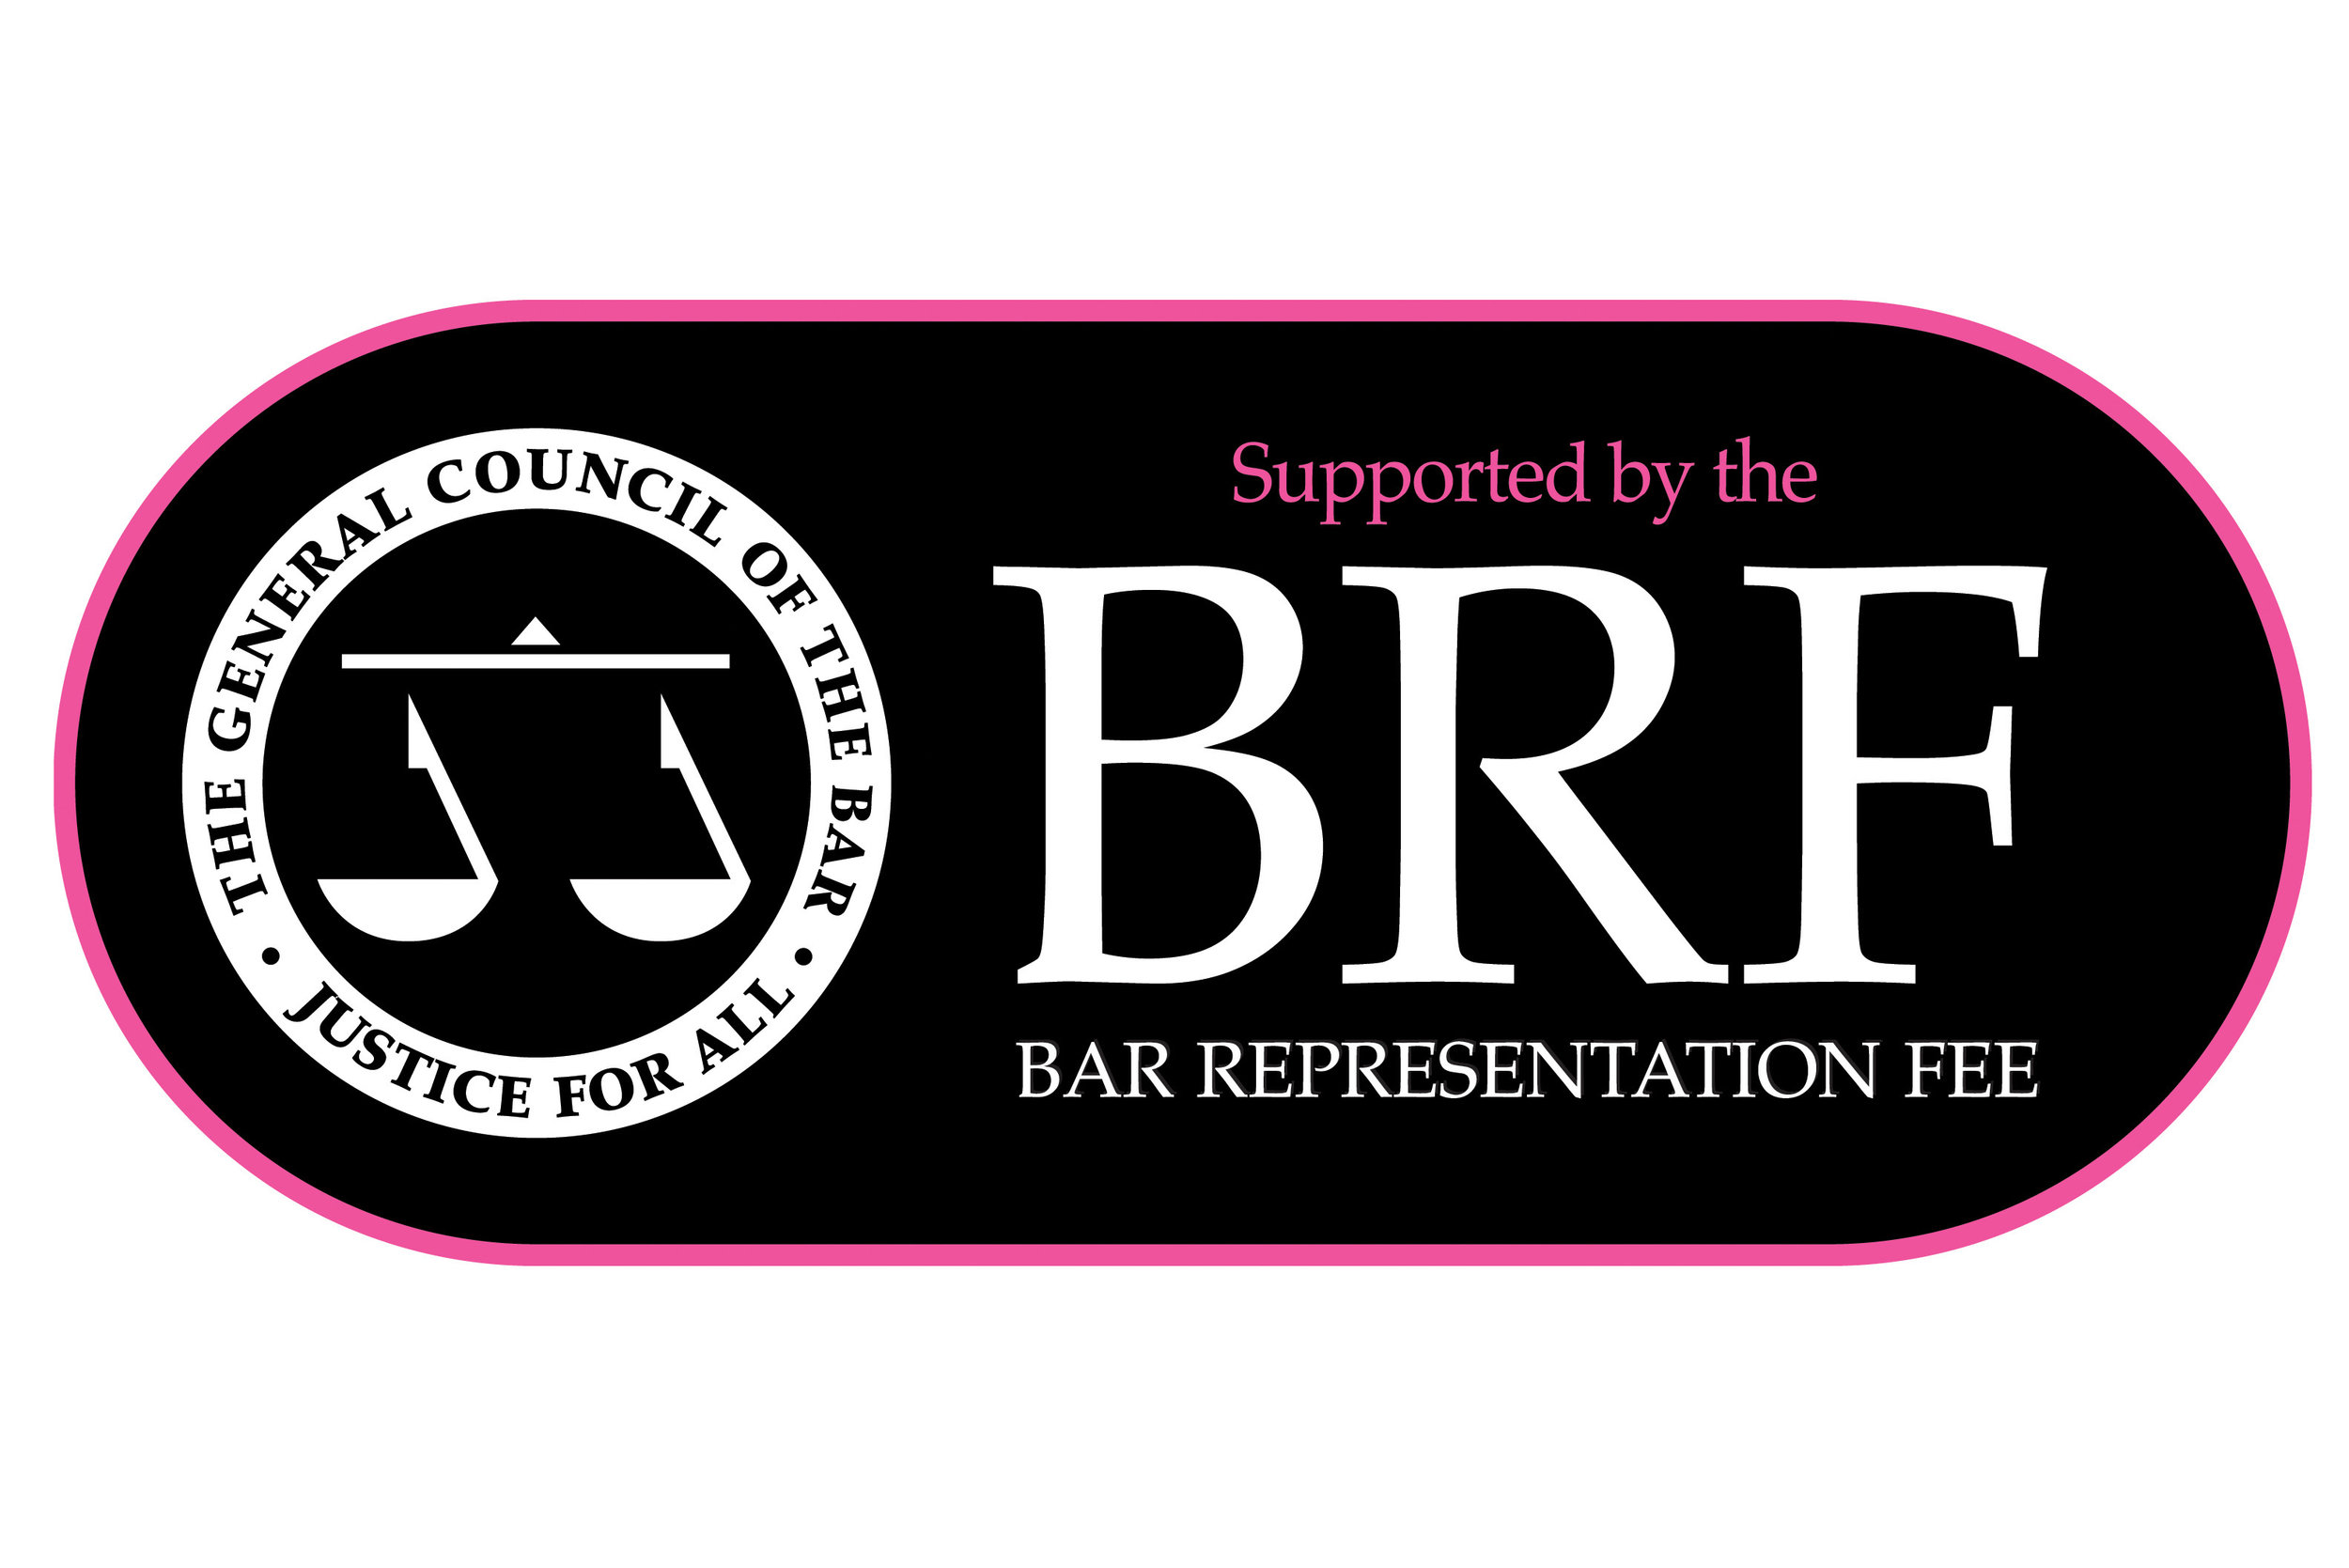 Bar Representation Fee - For work that cannot be funded by the Practising Certificate Fee (PCF), the Bar Council continues to seek a voluntary contribution from barristers, known as the Bar Representation Fee (BRF).Continue reading . . .